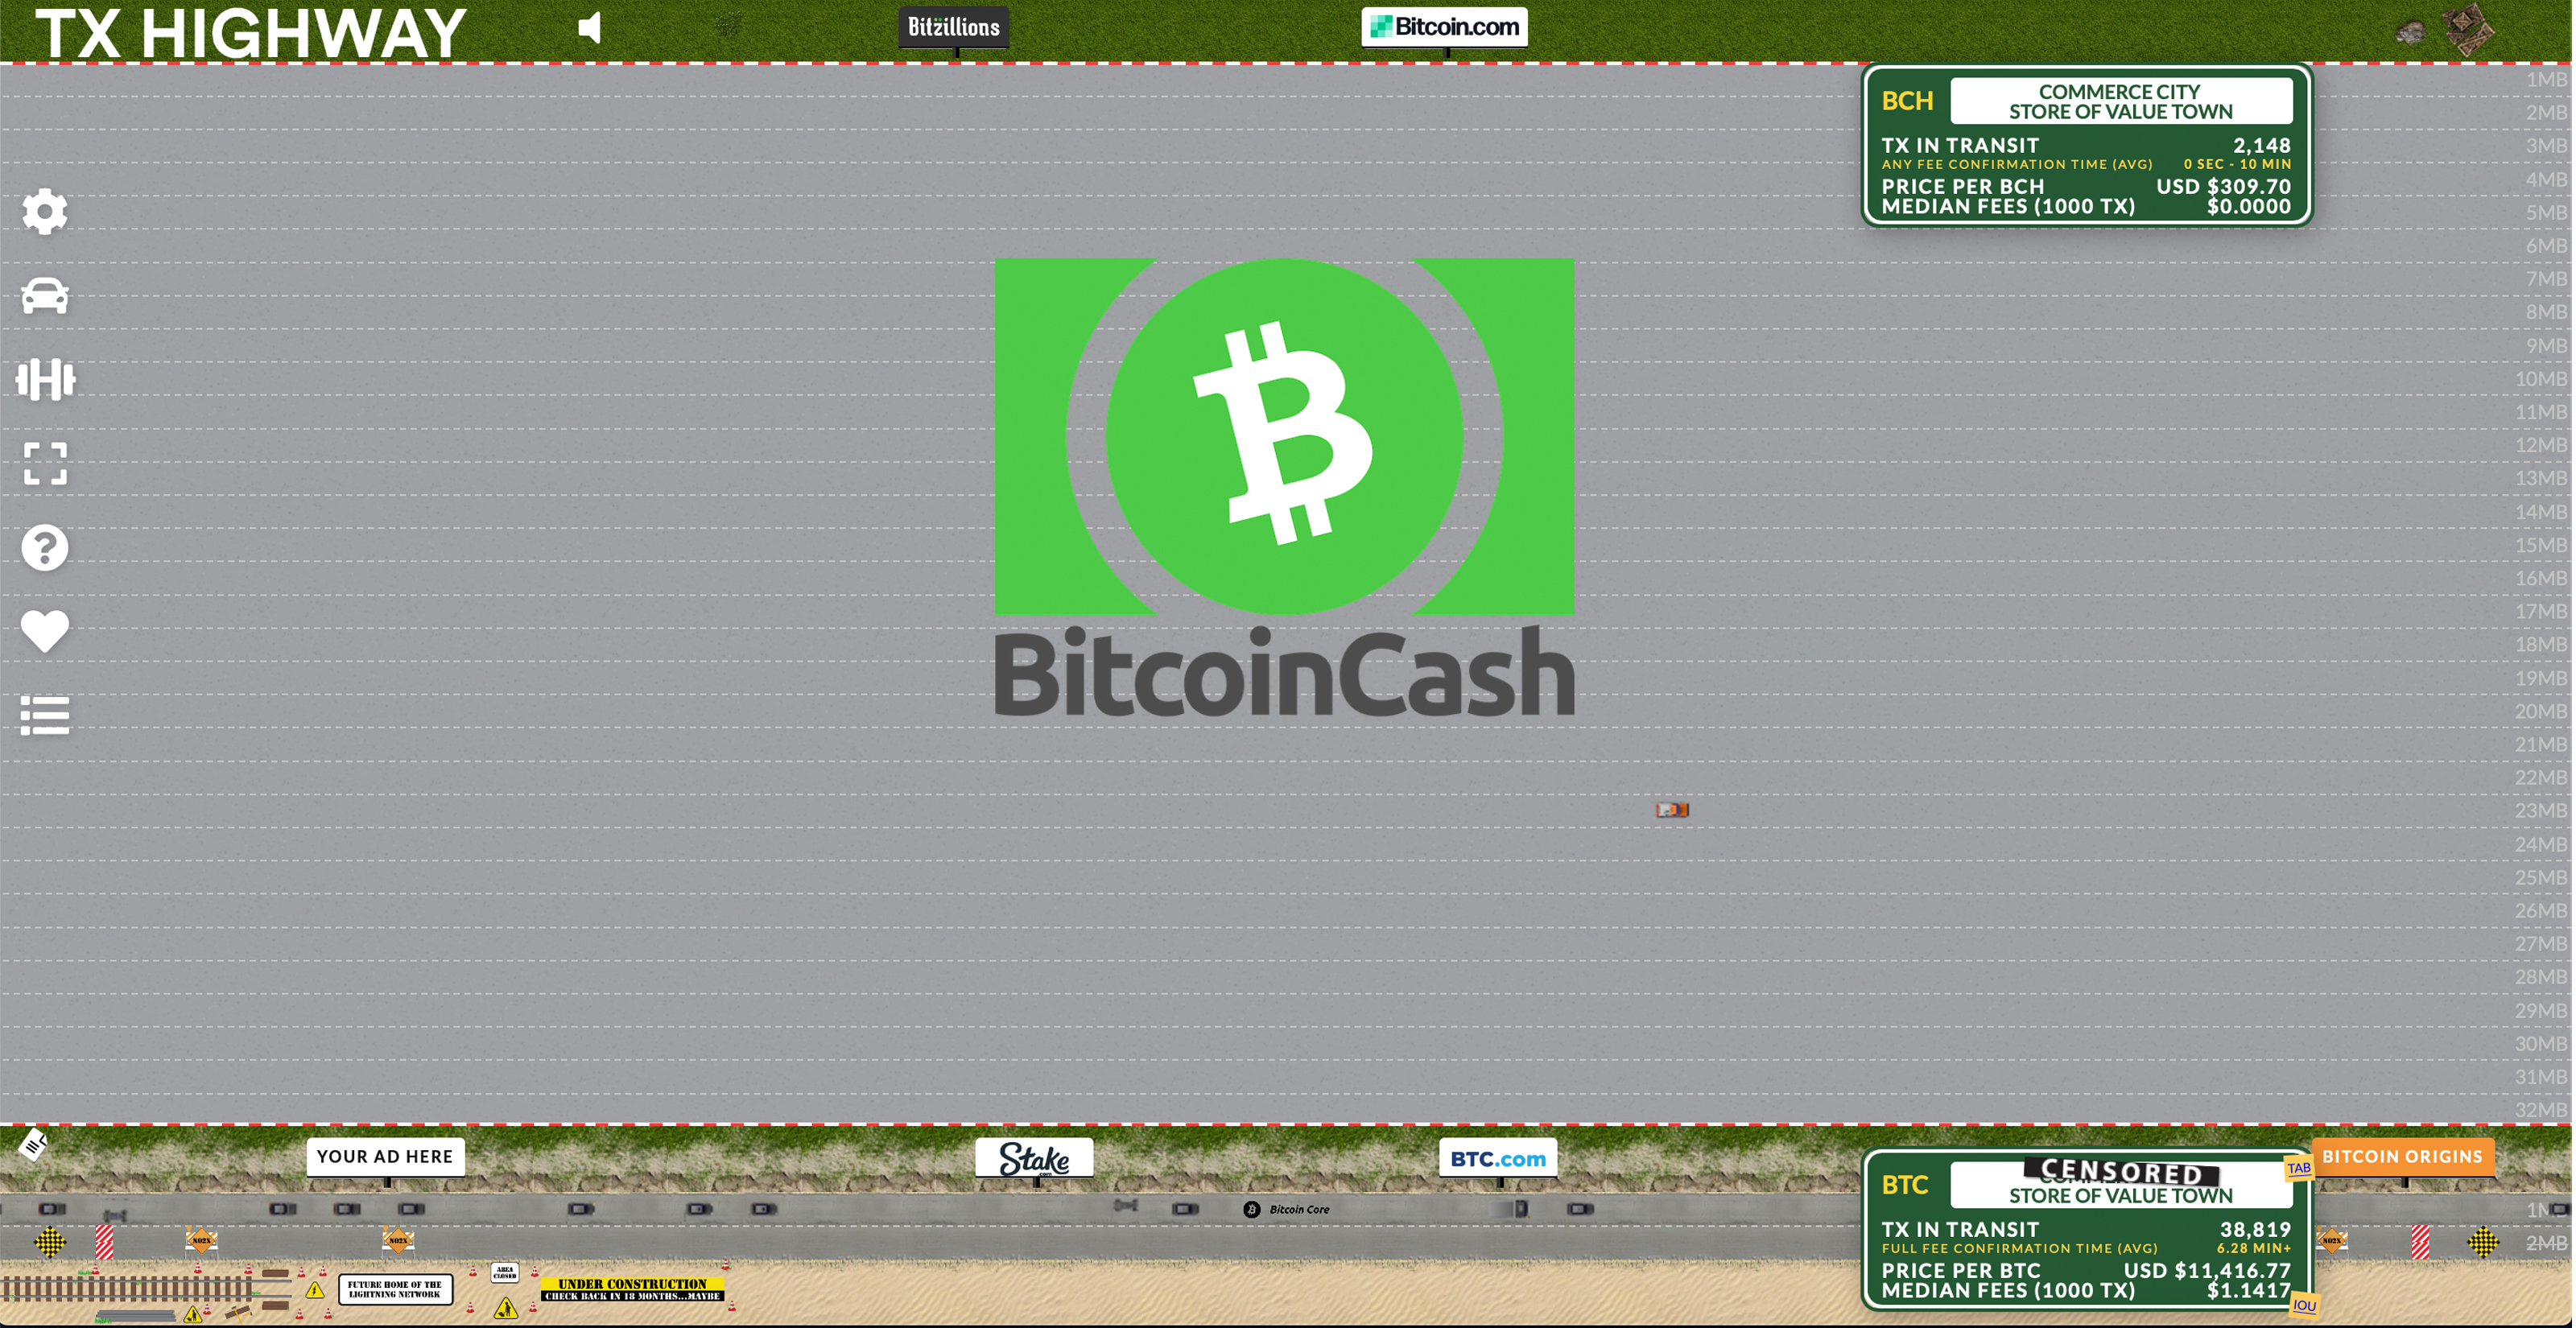 BCH News Roundup: Transactions Spike, Cashaddr Support and Developer Congress